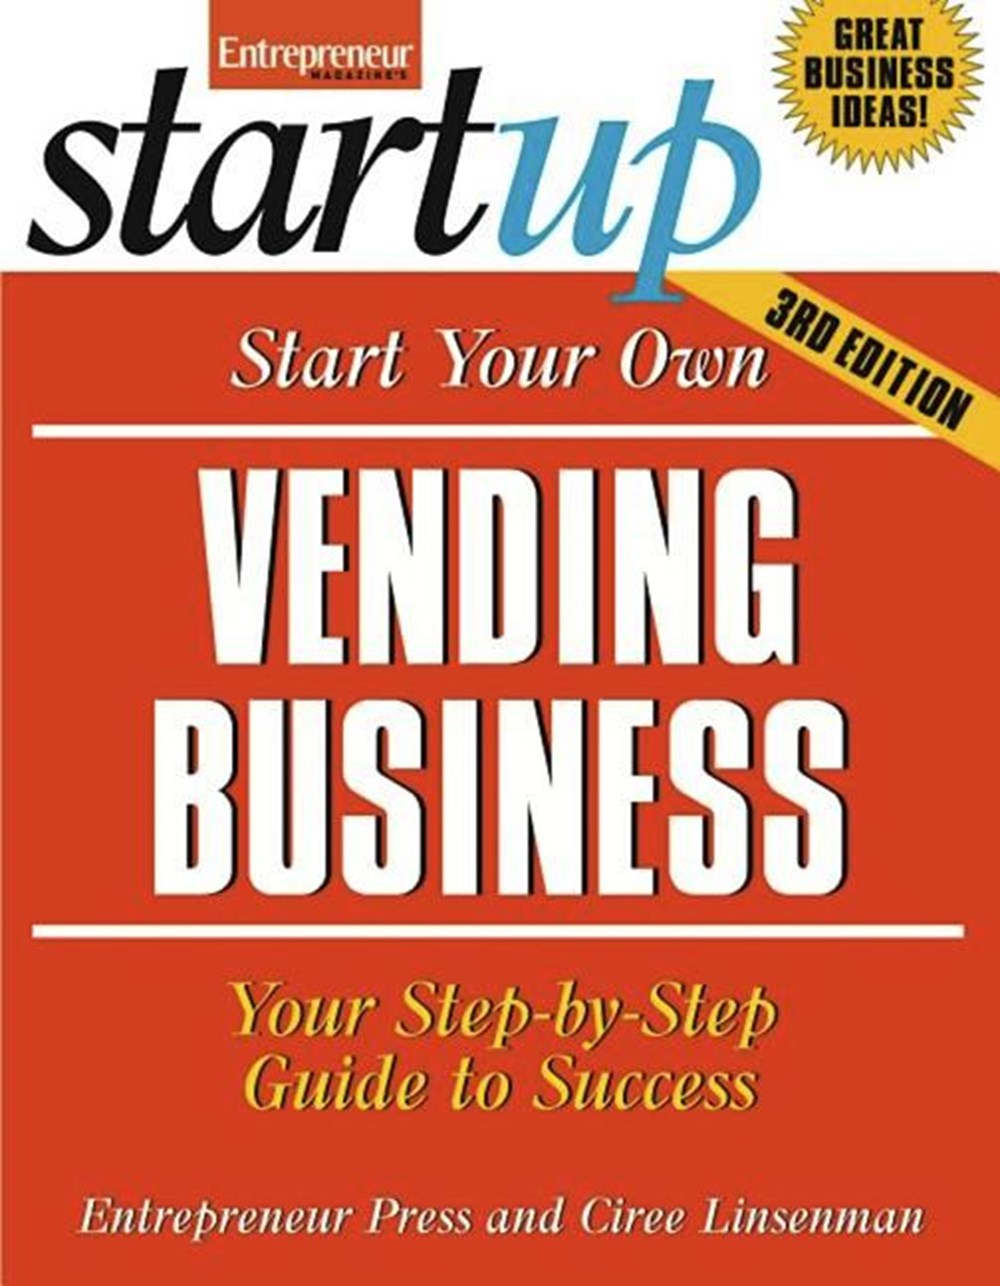 Start Your Own Vending Business: Your Step-By-Step Guide to Success